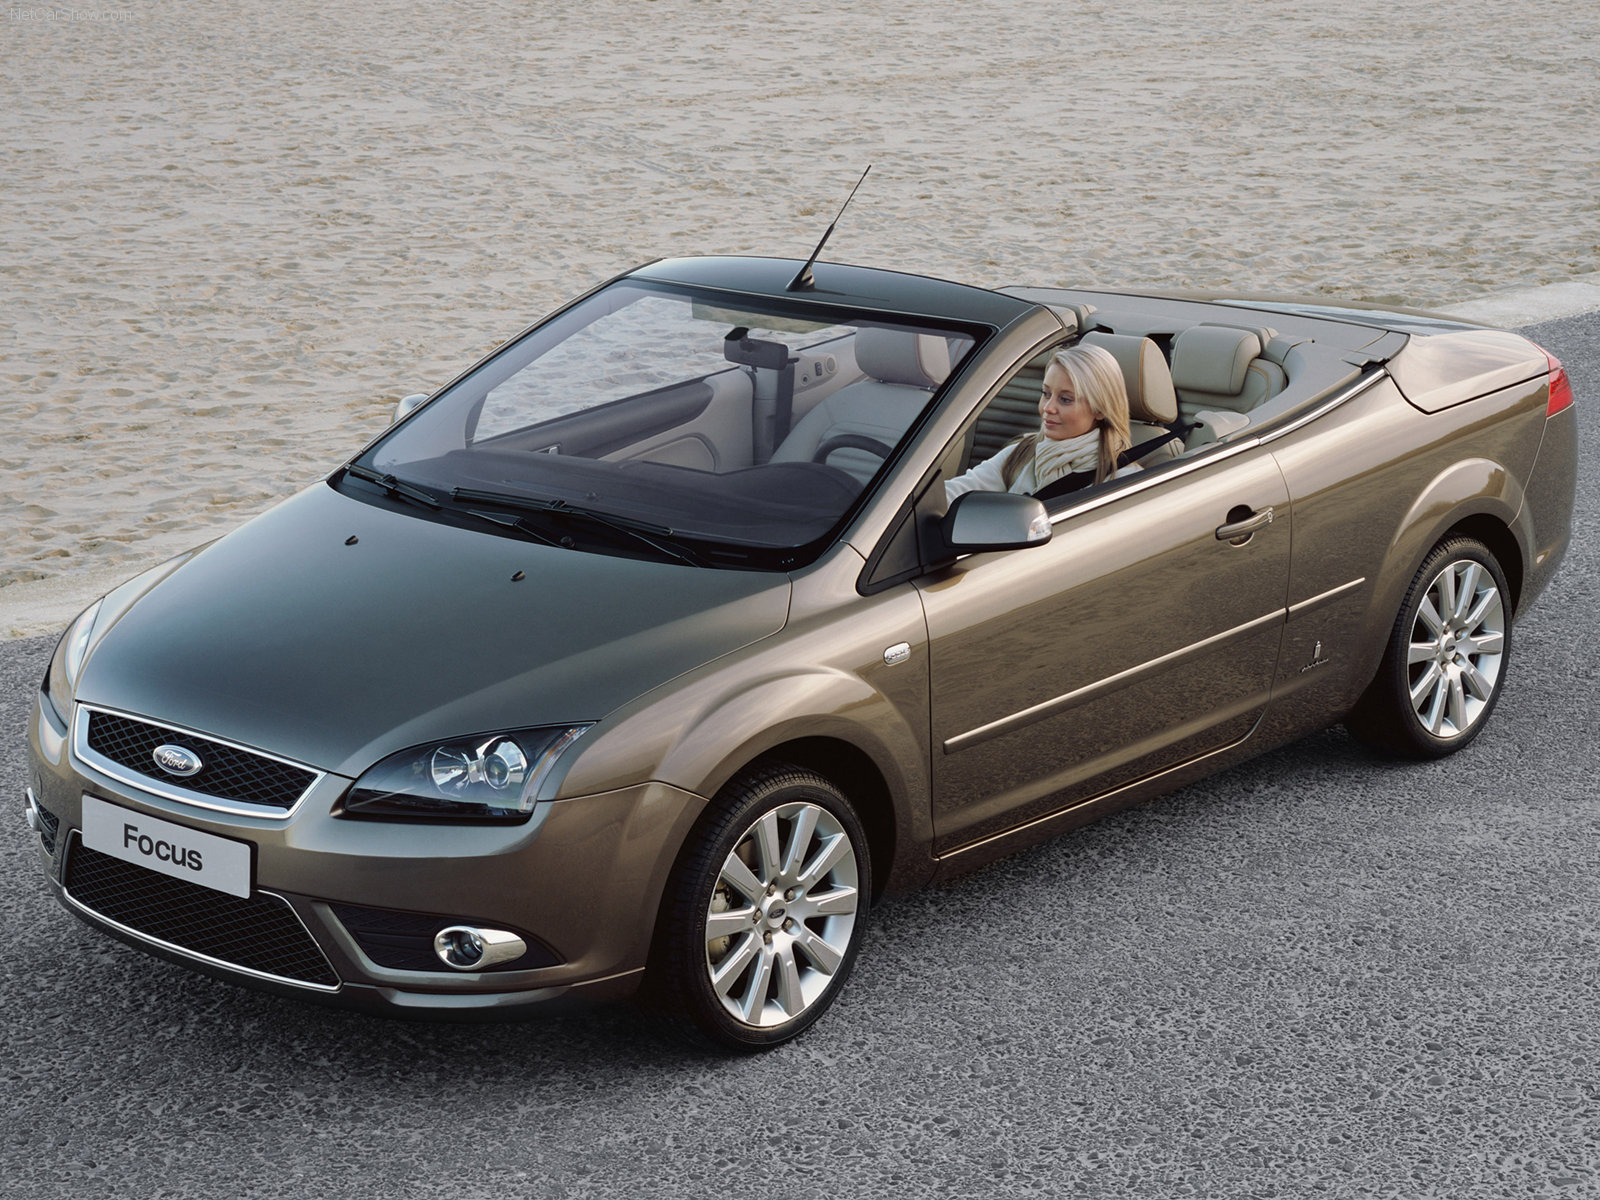 Ford Focus Coupe-Cabriolet photo 32458